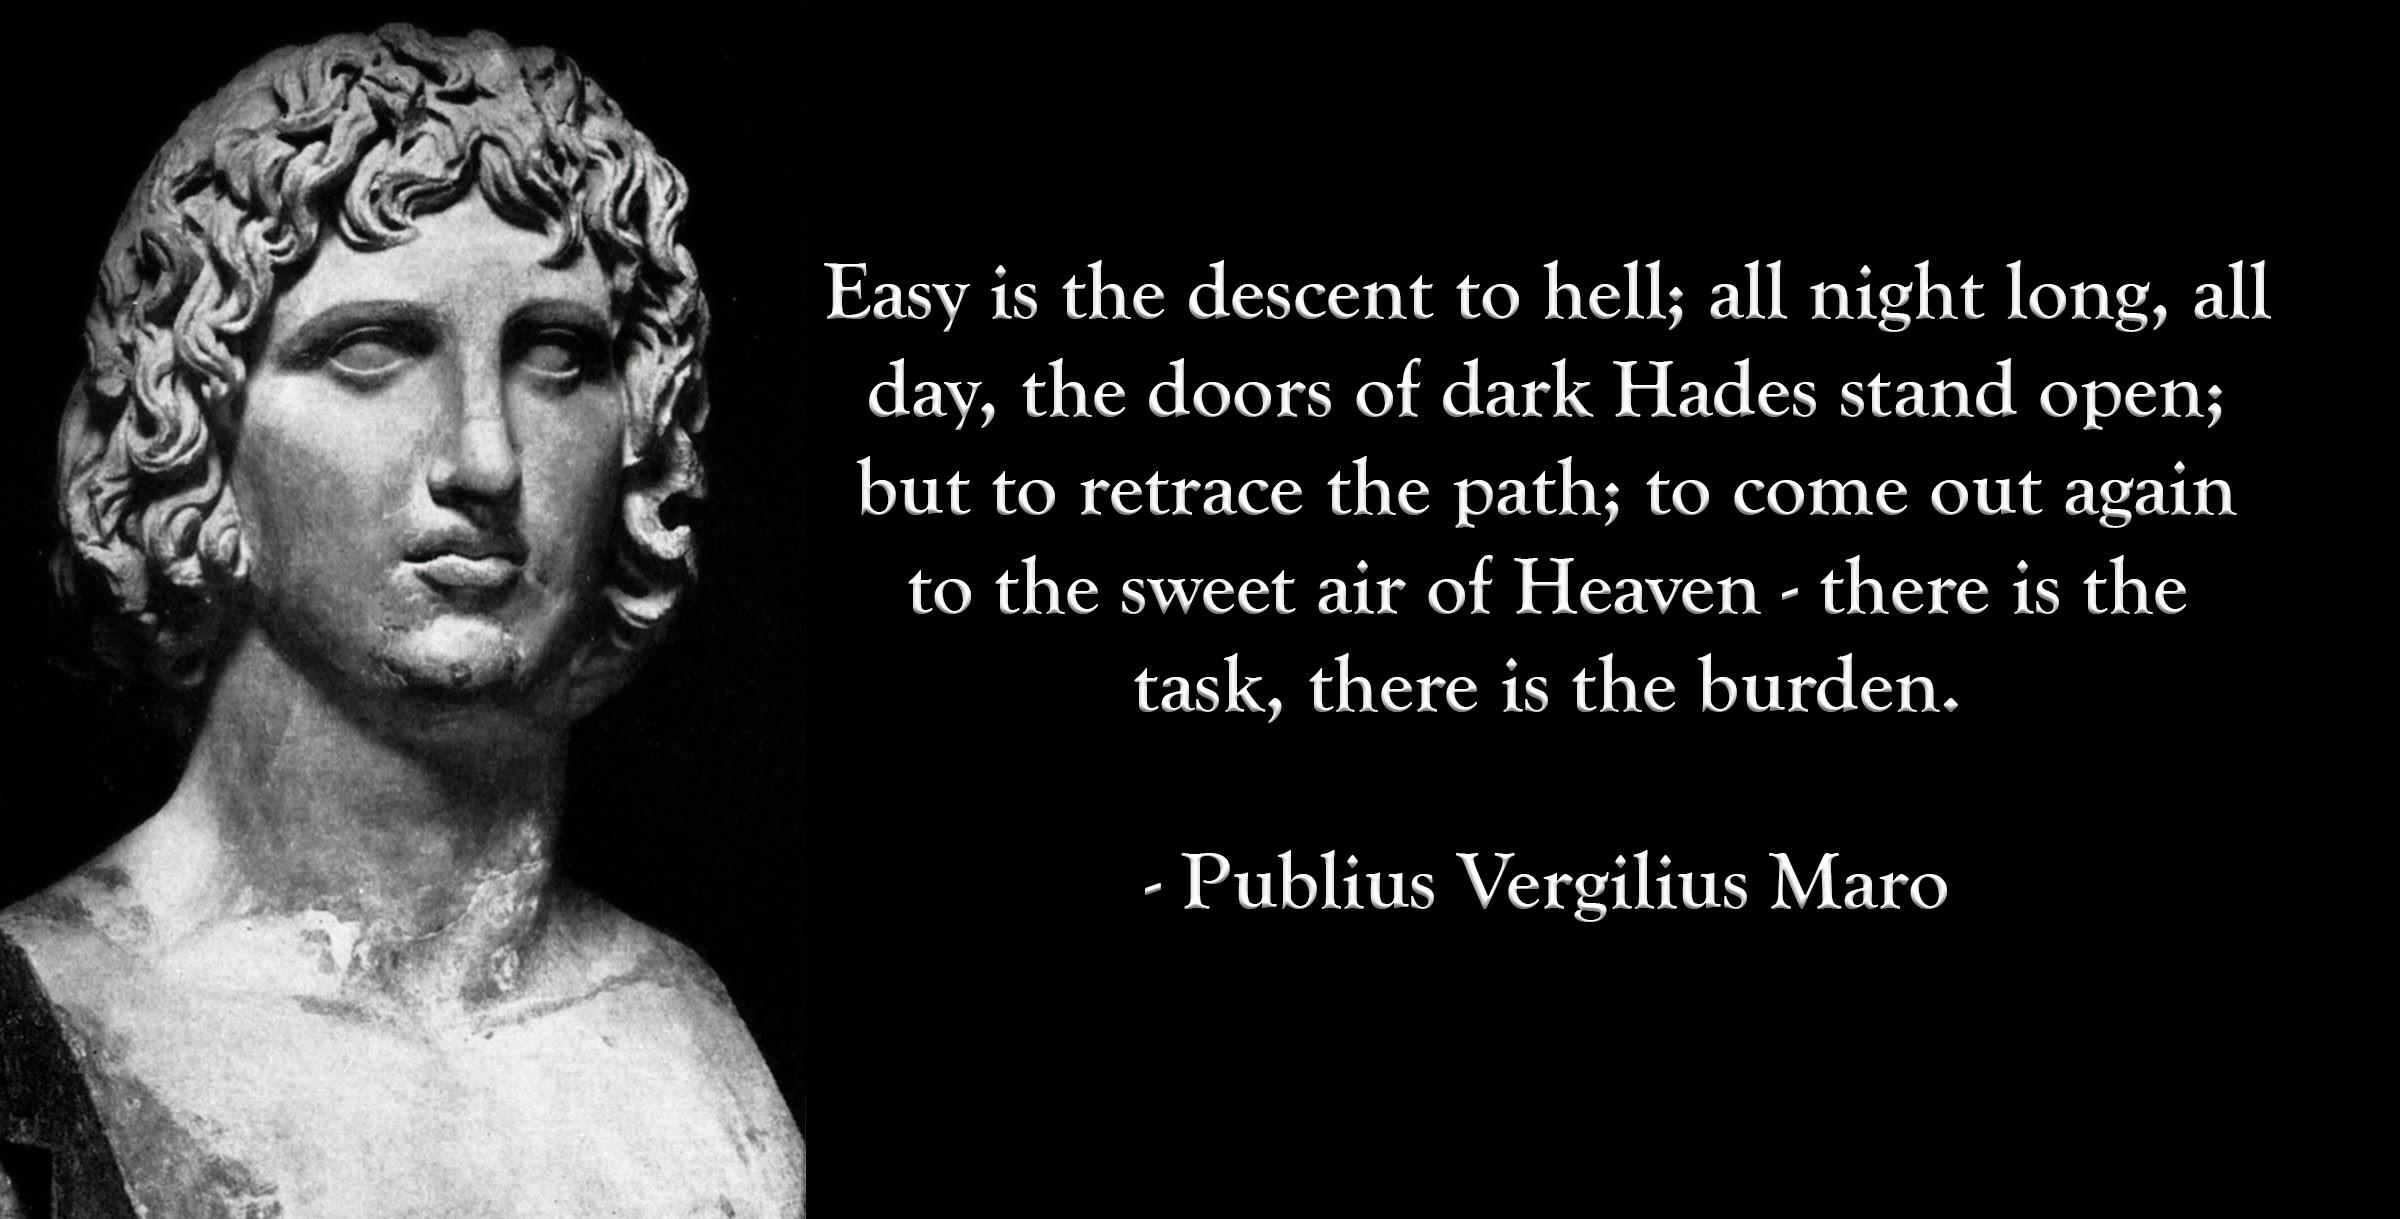 """Easy is the descent to hell; all night long, all day, the doors of dark Hades stand open; but to retrace the path; to come out again to the sweet air of Heaven – there is the task, there is the burden."" – Publius Vergilius Maro [OC][2400 × 1219]"